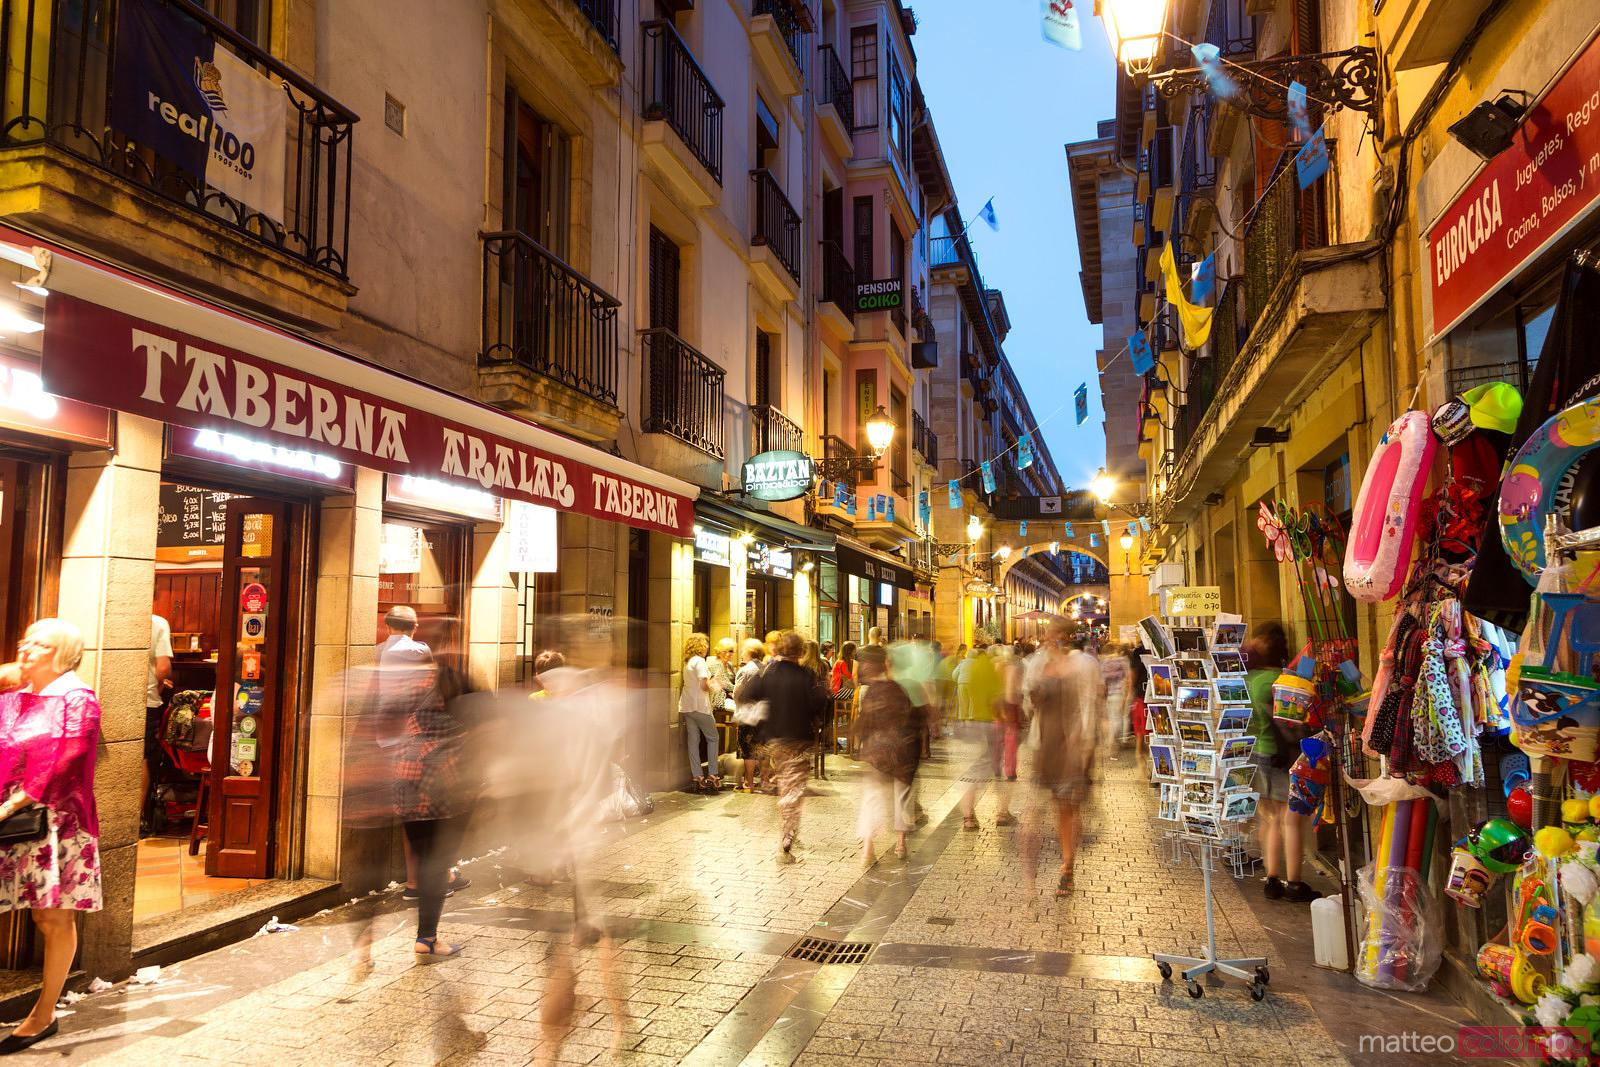 Matteo Colombo Travel Photography Pedestrian Street In The